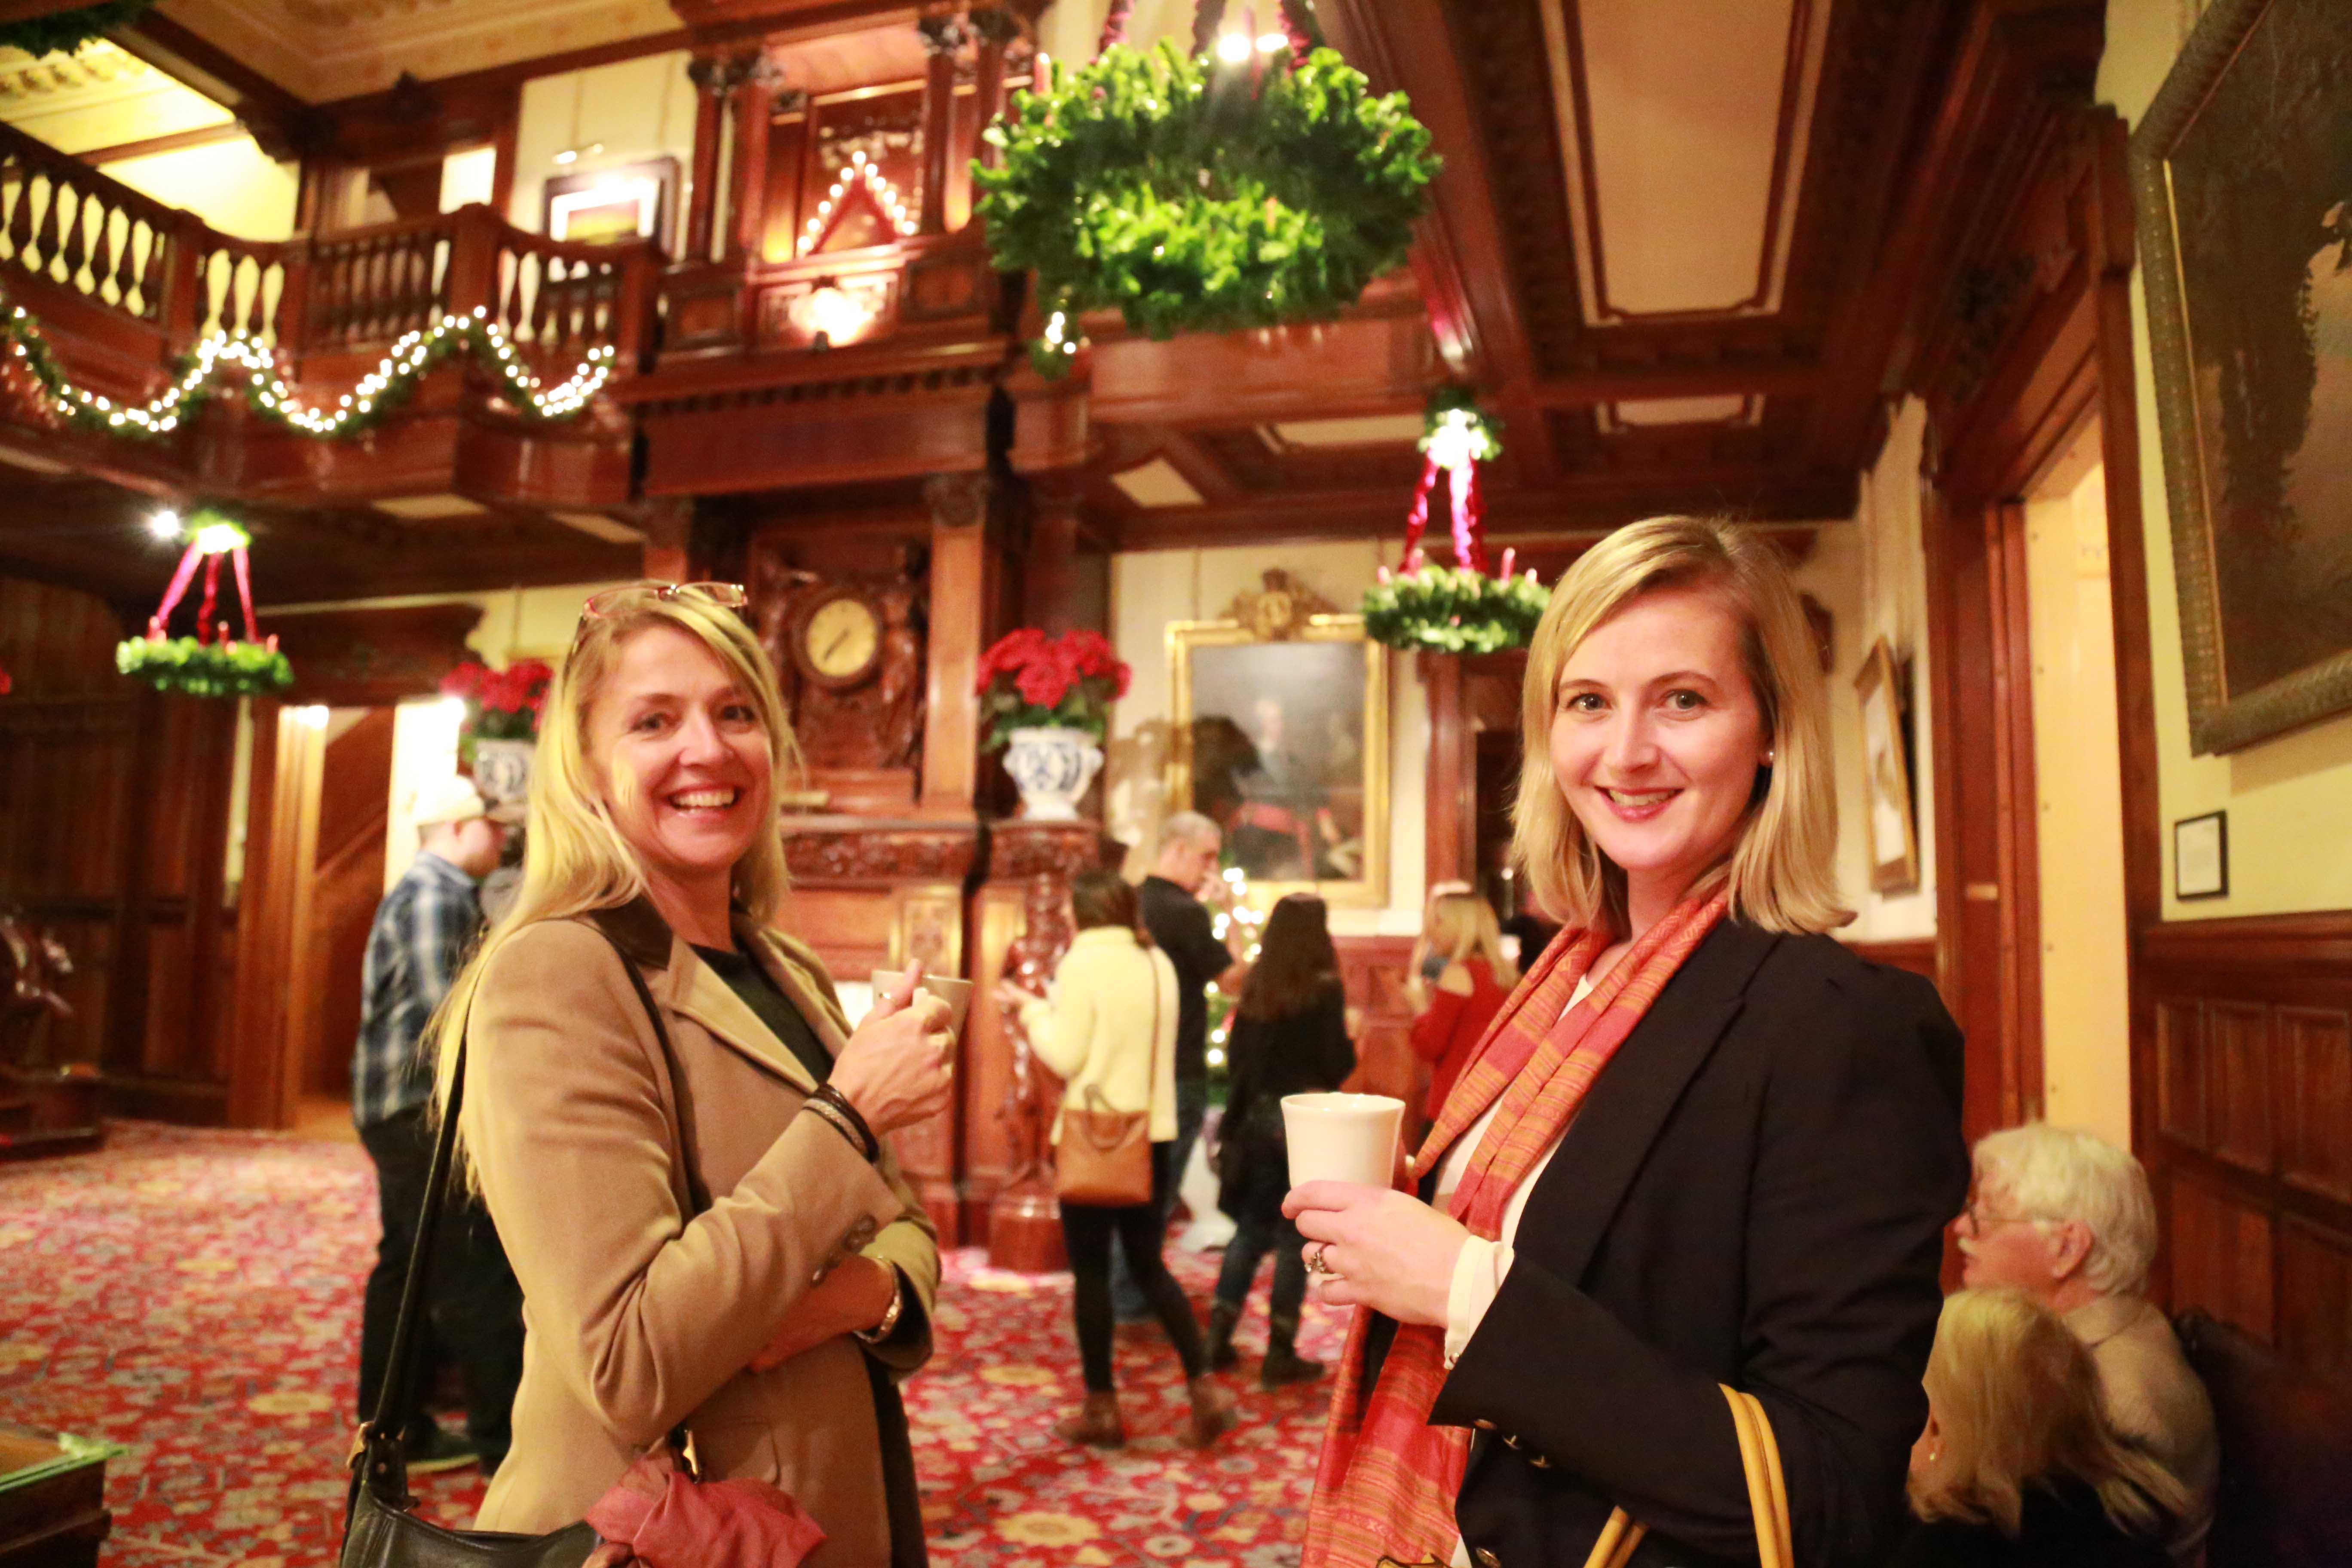 Glogg tour in Great Hall. Photo by KRNelson